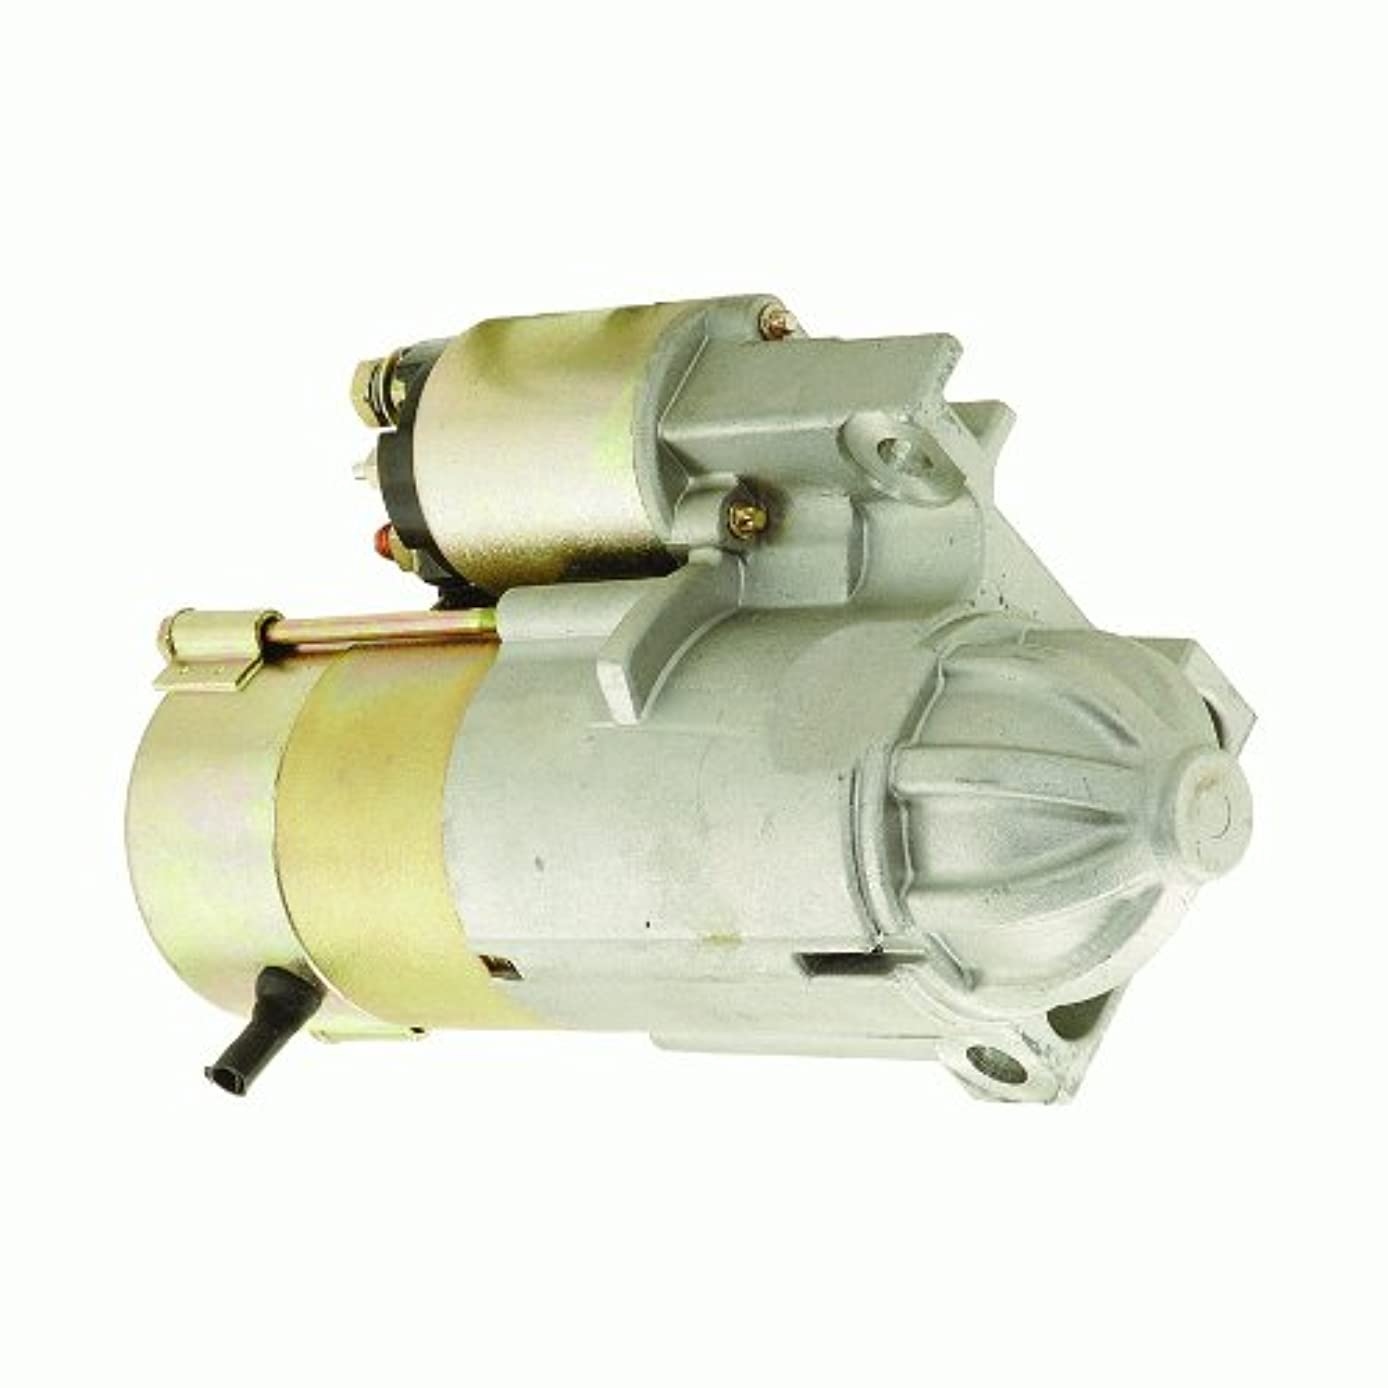 ACDelco 337-1111 Professional Starter